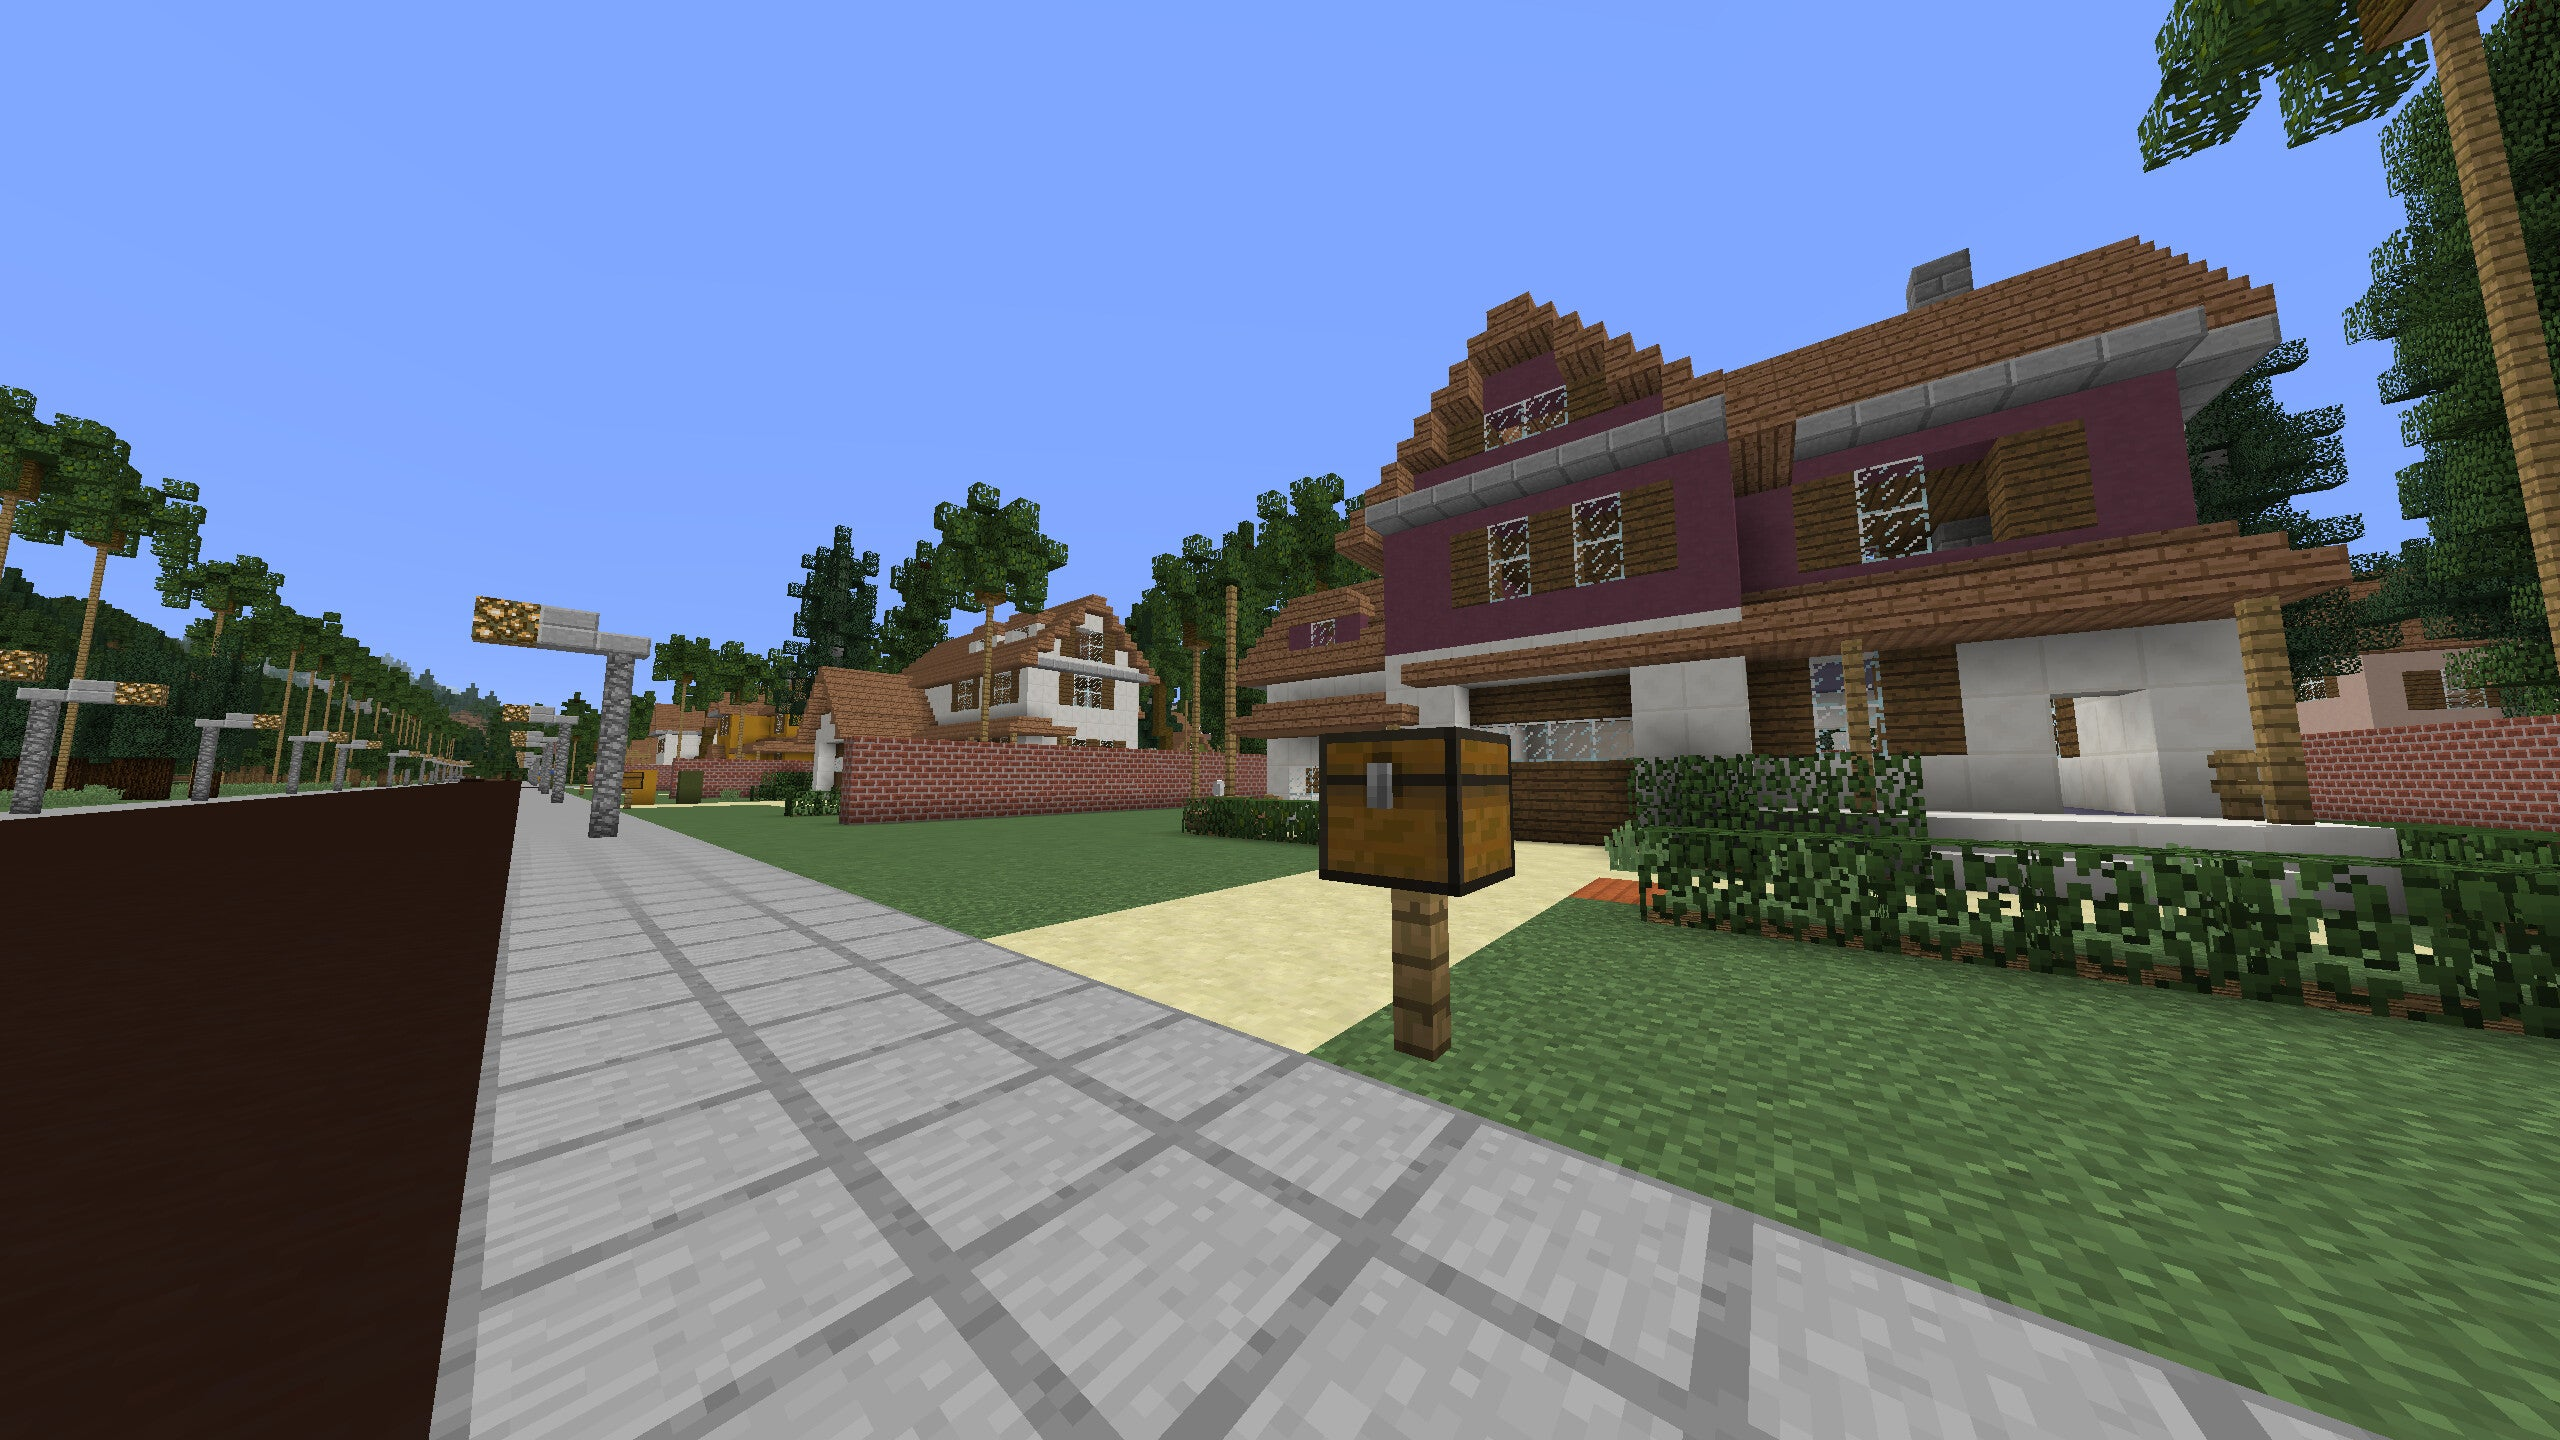 It's Fun To Explore the Minecraft Version of Los Angeles